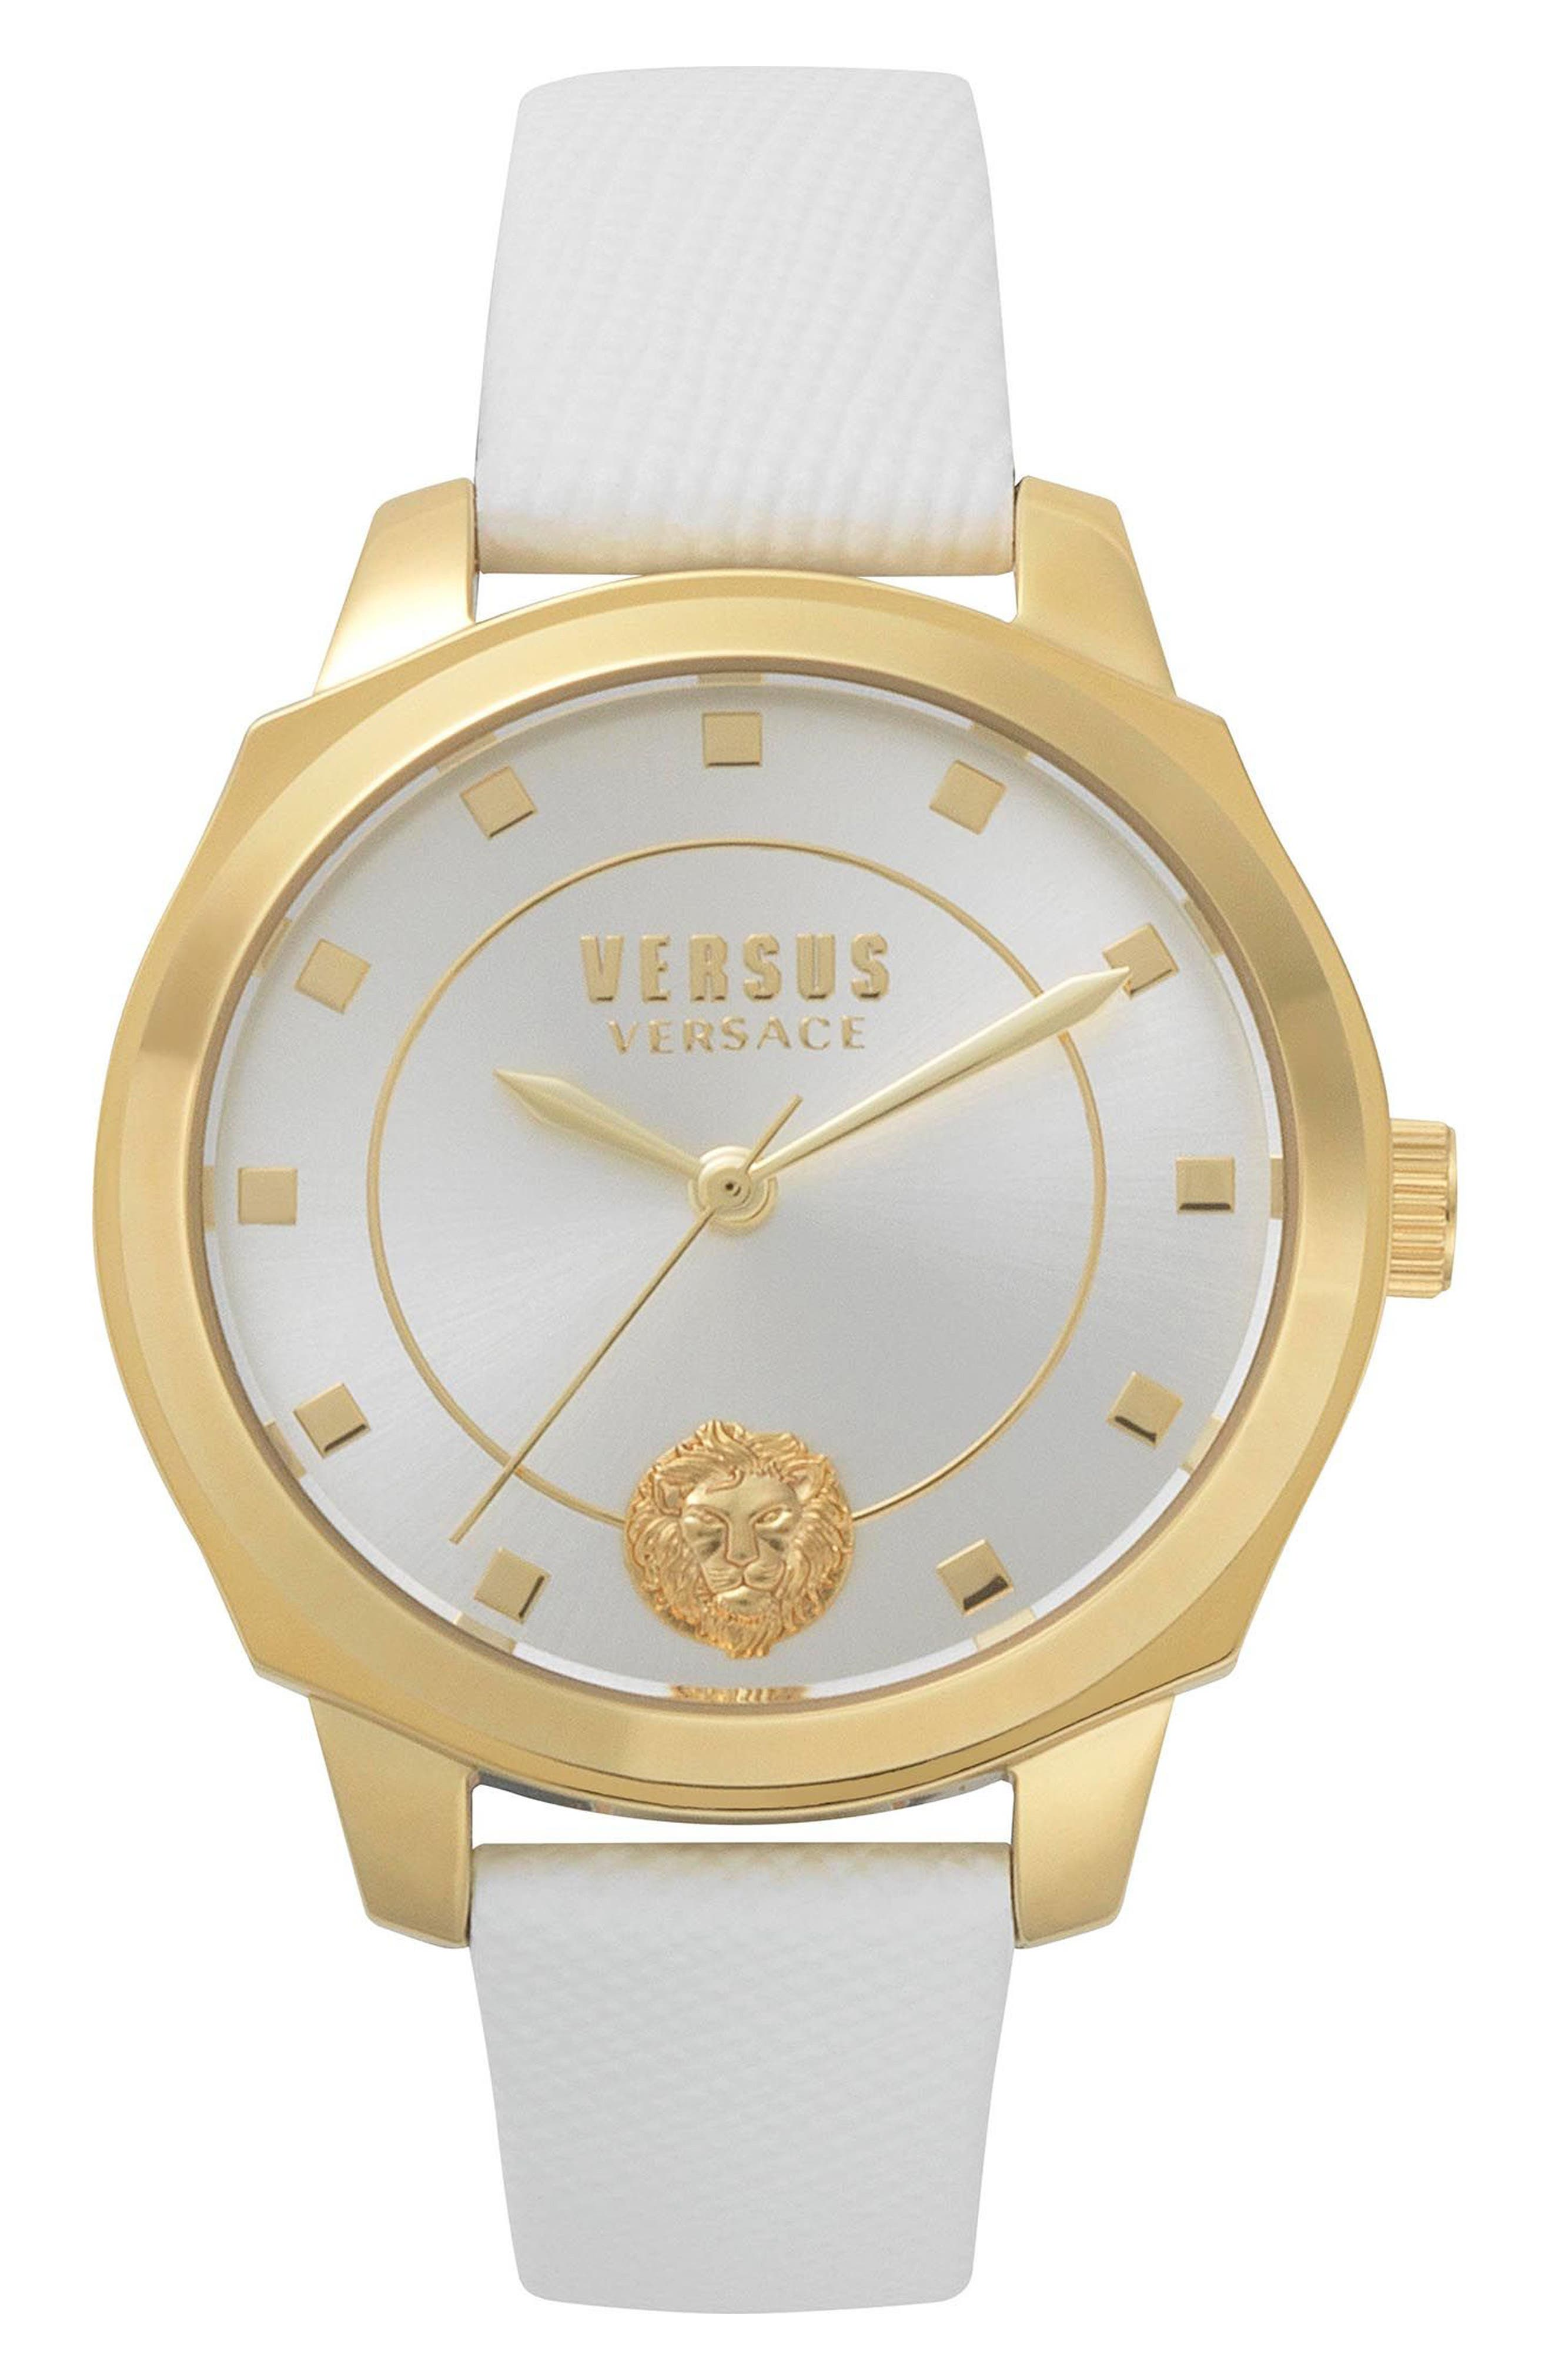 VERSUS by Versace Chelsea Leather Strap Watch, 34mm,                         Main,                         color, White/ Silver/ Gold